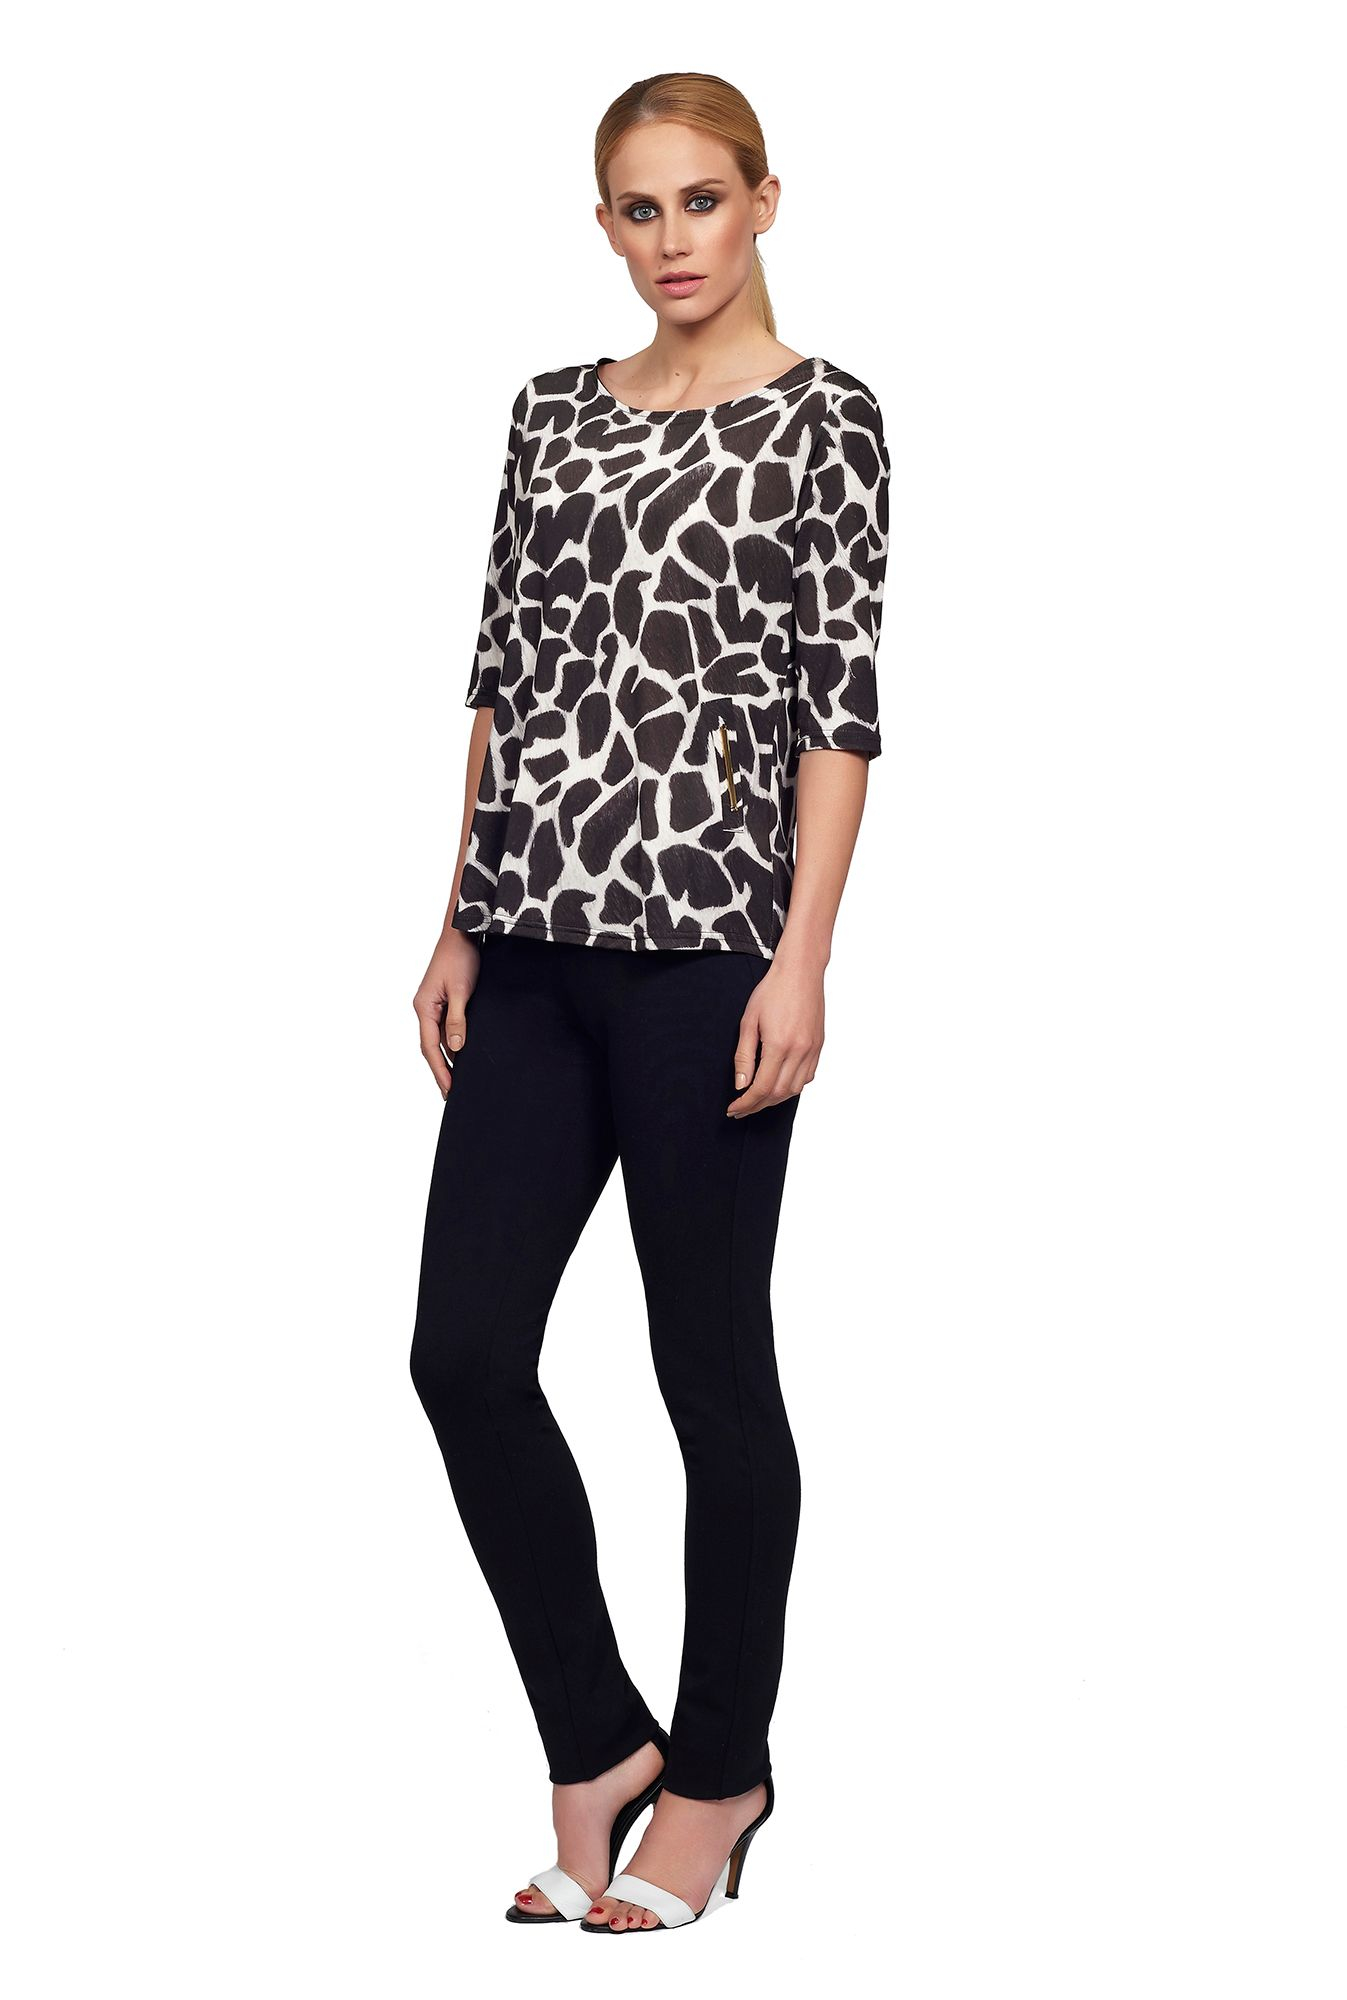 From leopard to cheetah, snakeskin, and zebra, animal prints are taking over for fall Whether you're on the prowl for a leopard jacket or a cool pair of snake print boots, these are the best.